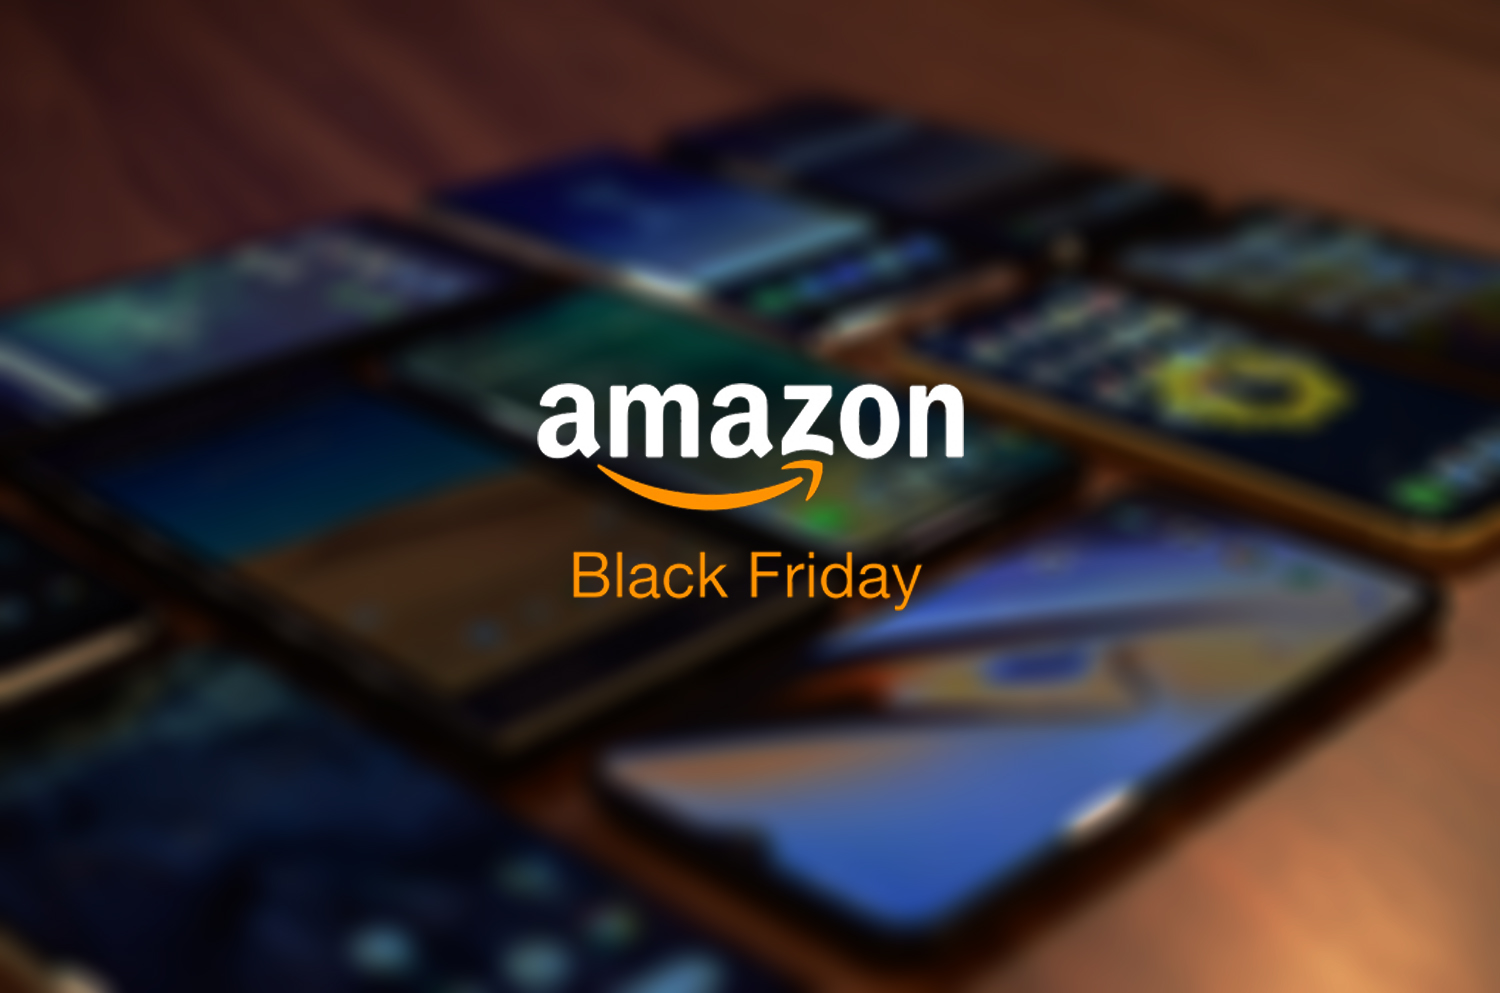 Best Black Friday Smartphone Deals On Amazon